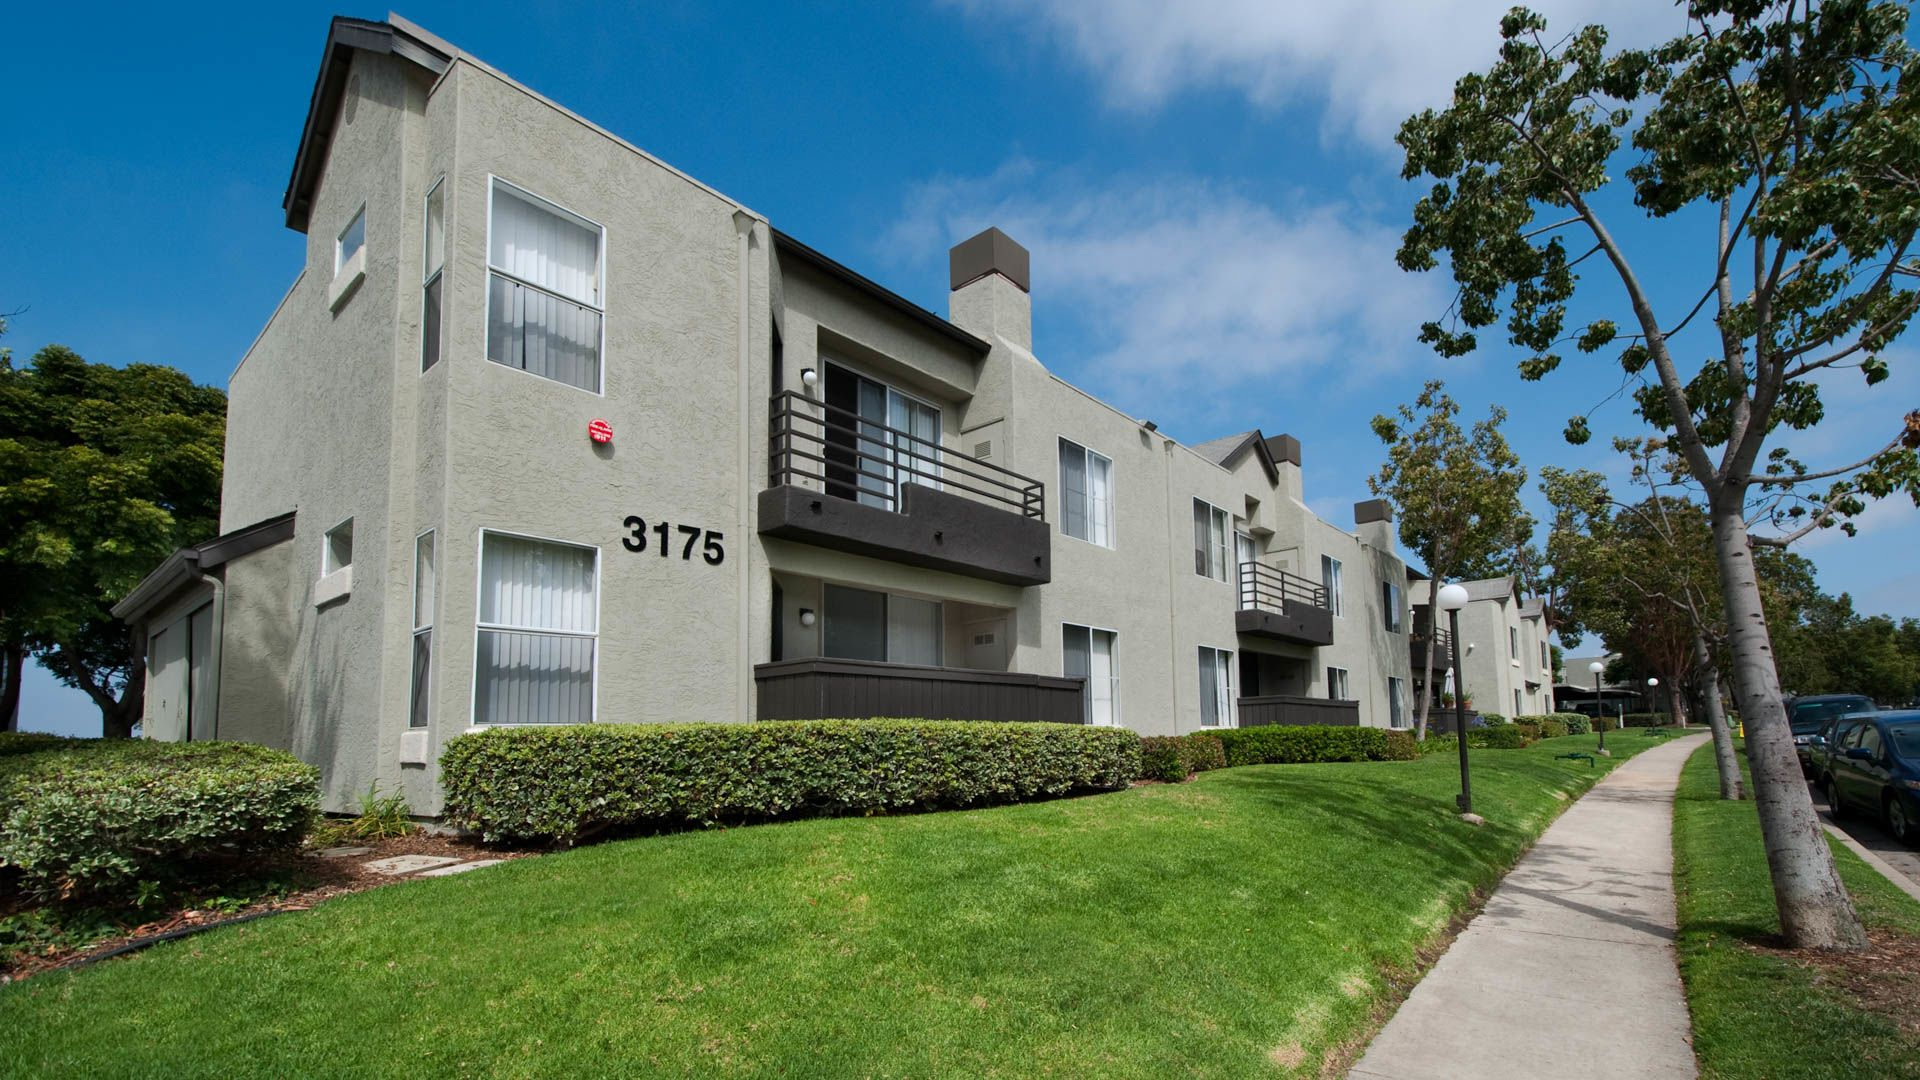 Canyon ridge apartments clairemont mesa west 3187 cowley way - Apartment buildings san diego ...